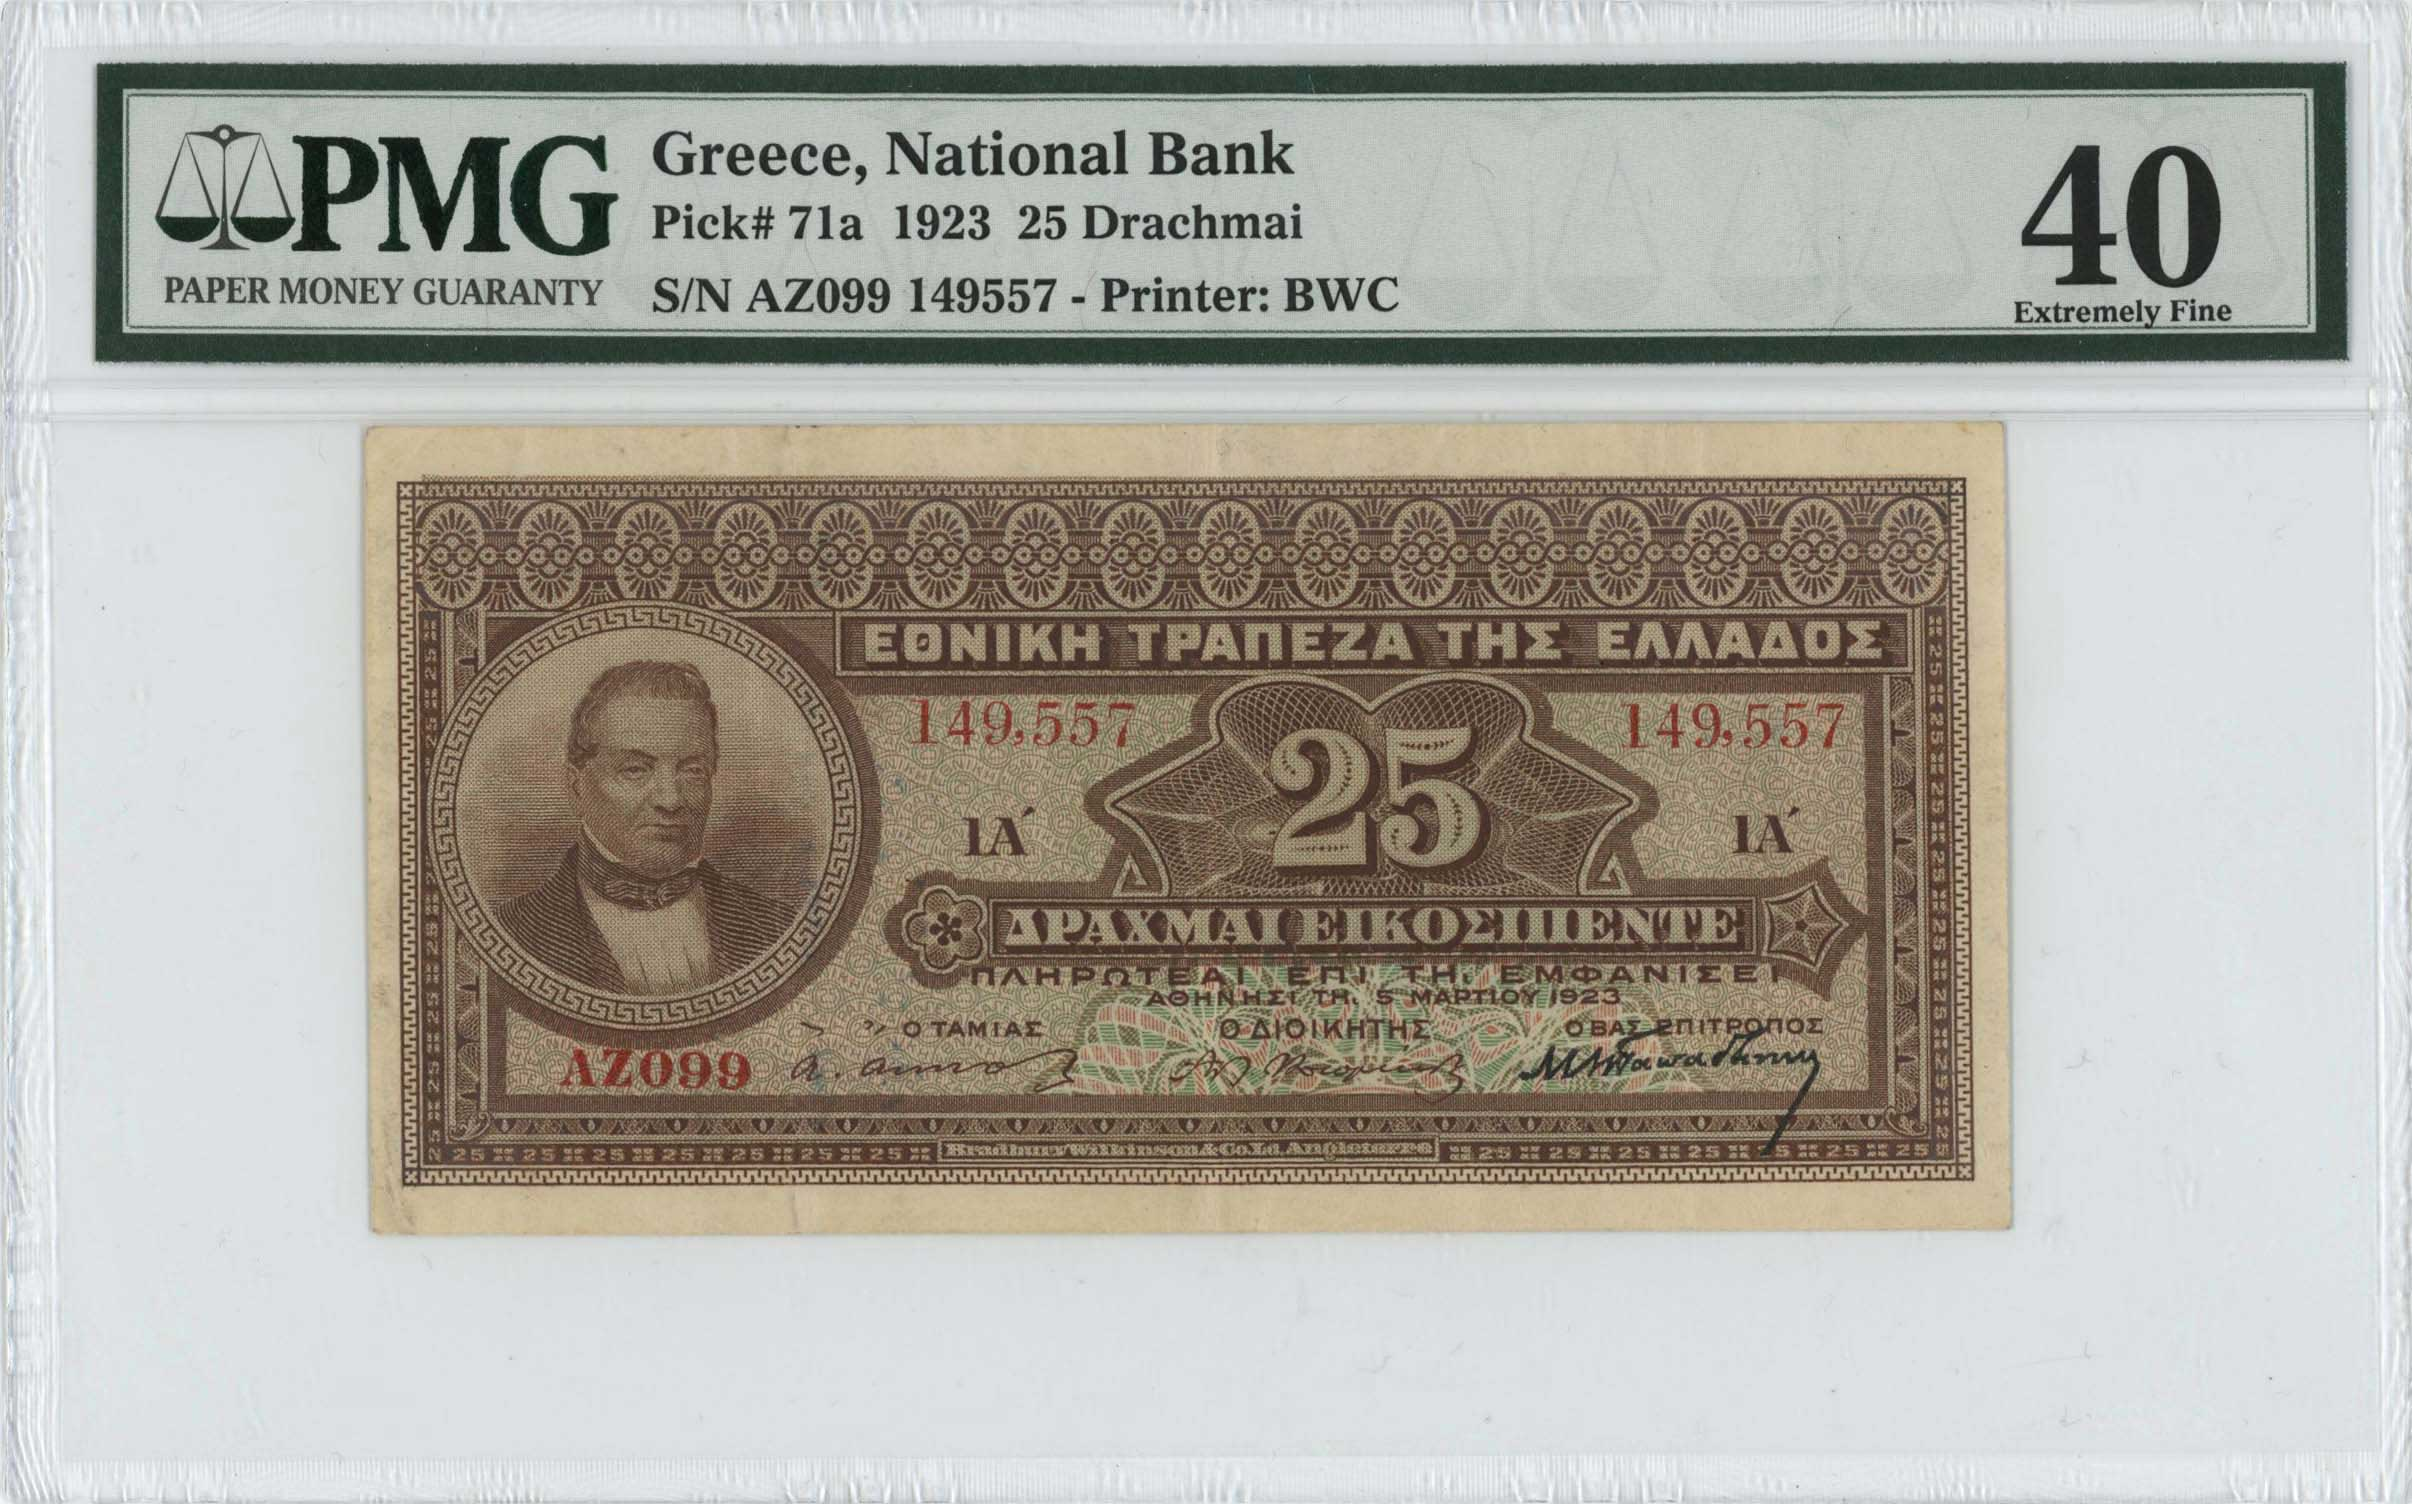 Lot 6413 - -  PAPER MONEY - BANKNOTES National Bank of Greece -  A. Karamitsos Public & Live Internet Auction 671 (Part A)